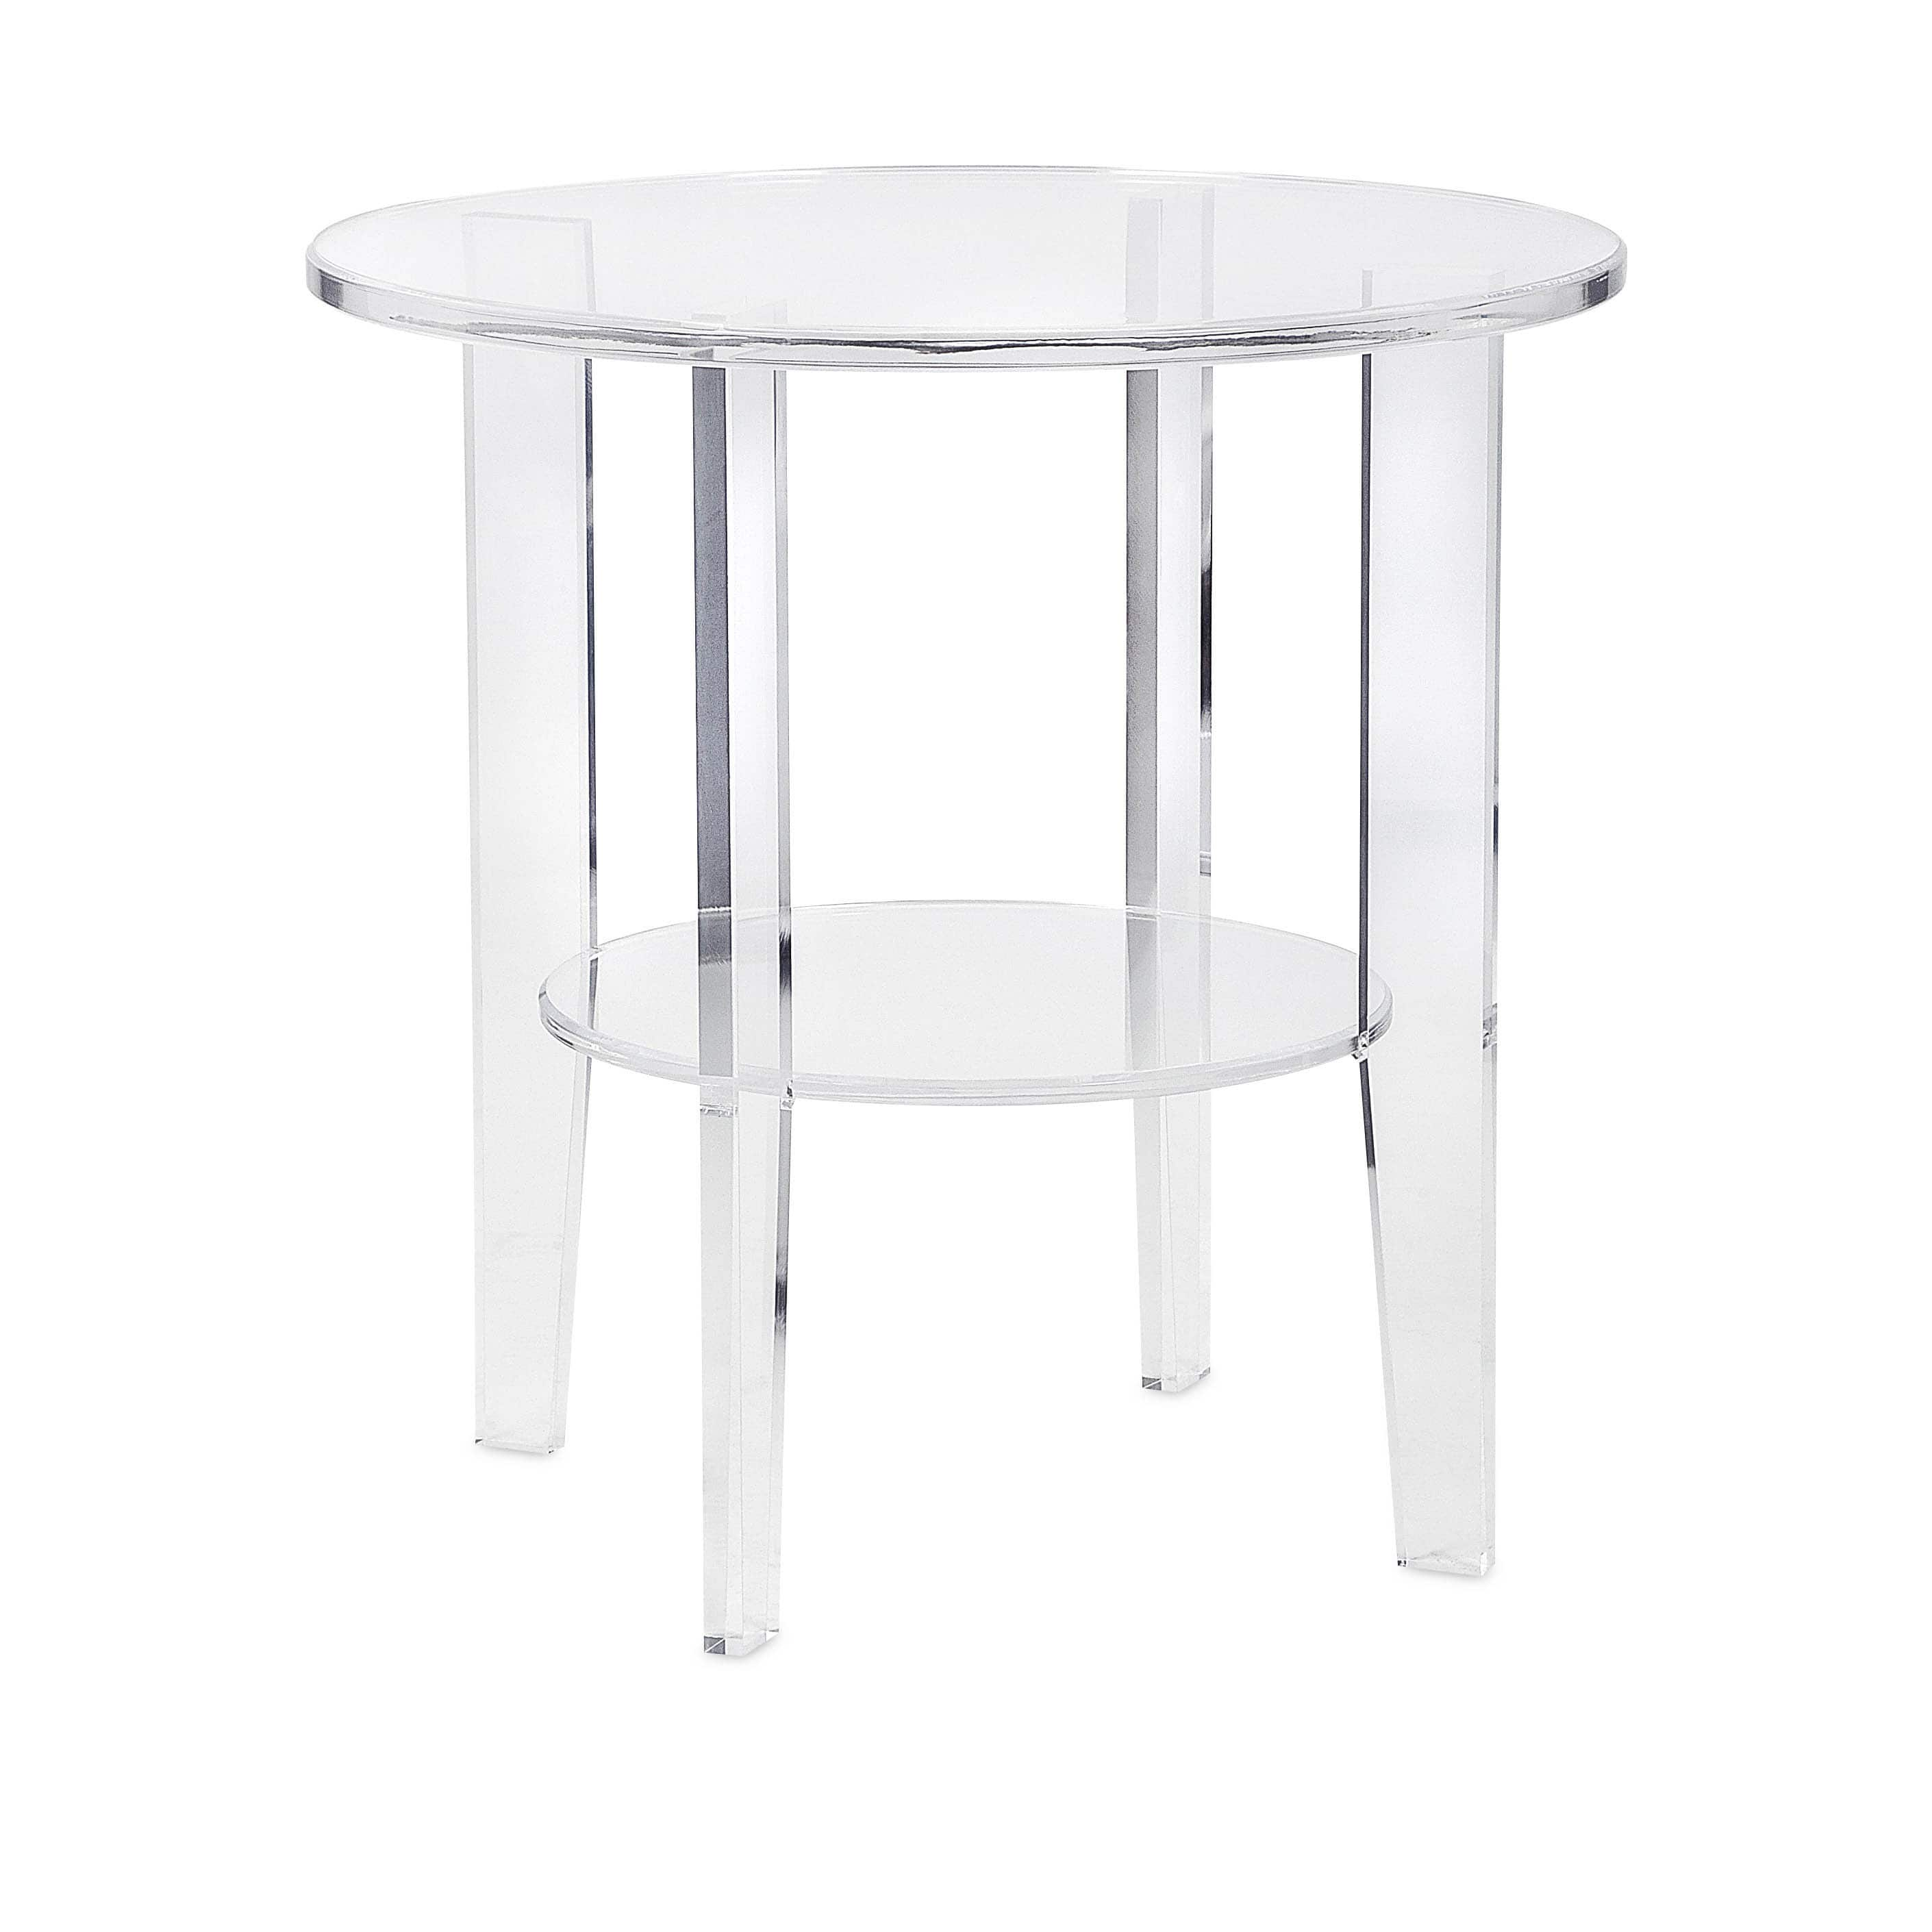 estelle clear frosted acrylic accent table free shipping today storage furniture for small spaces outdoor umbrella and stand dark wood nightstands semi circle side wedding covers